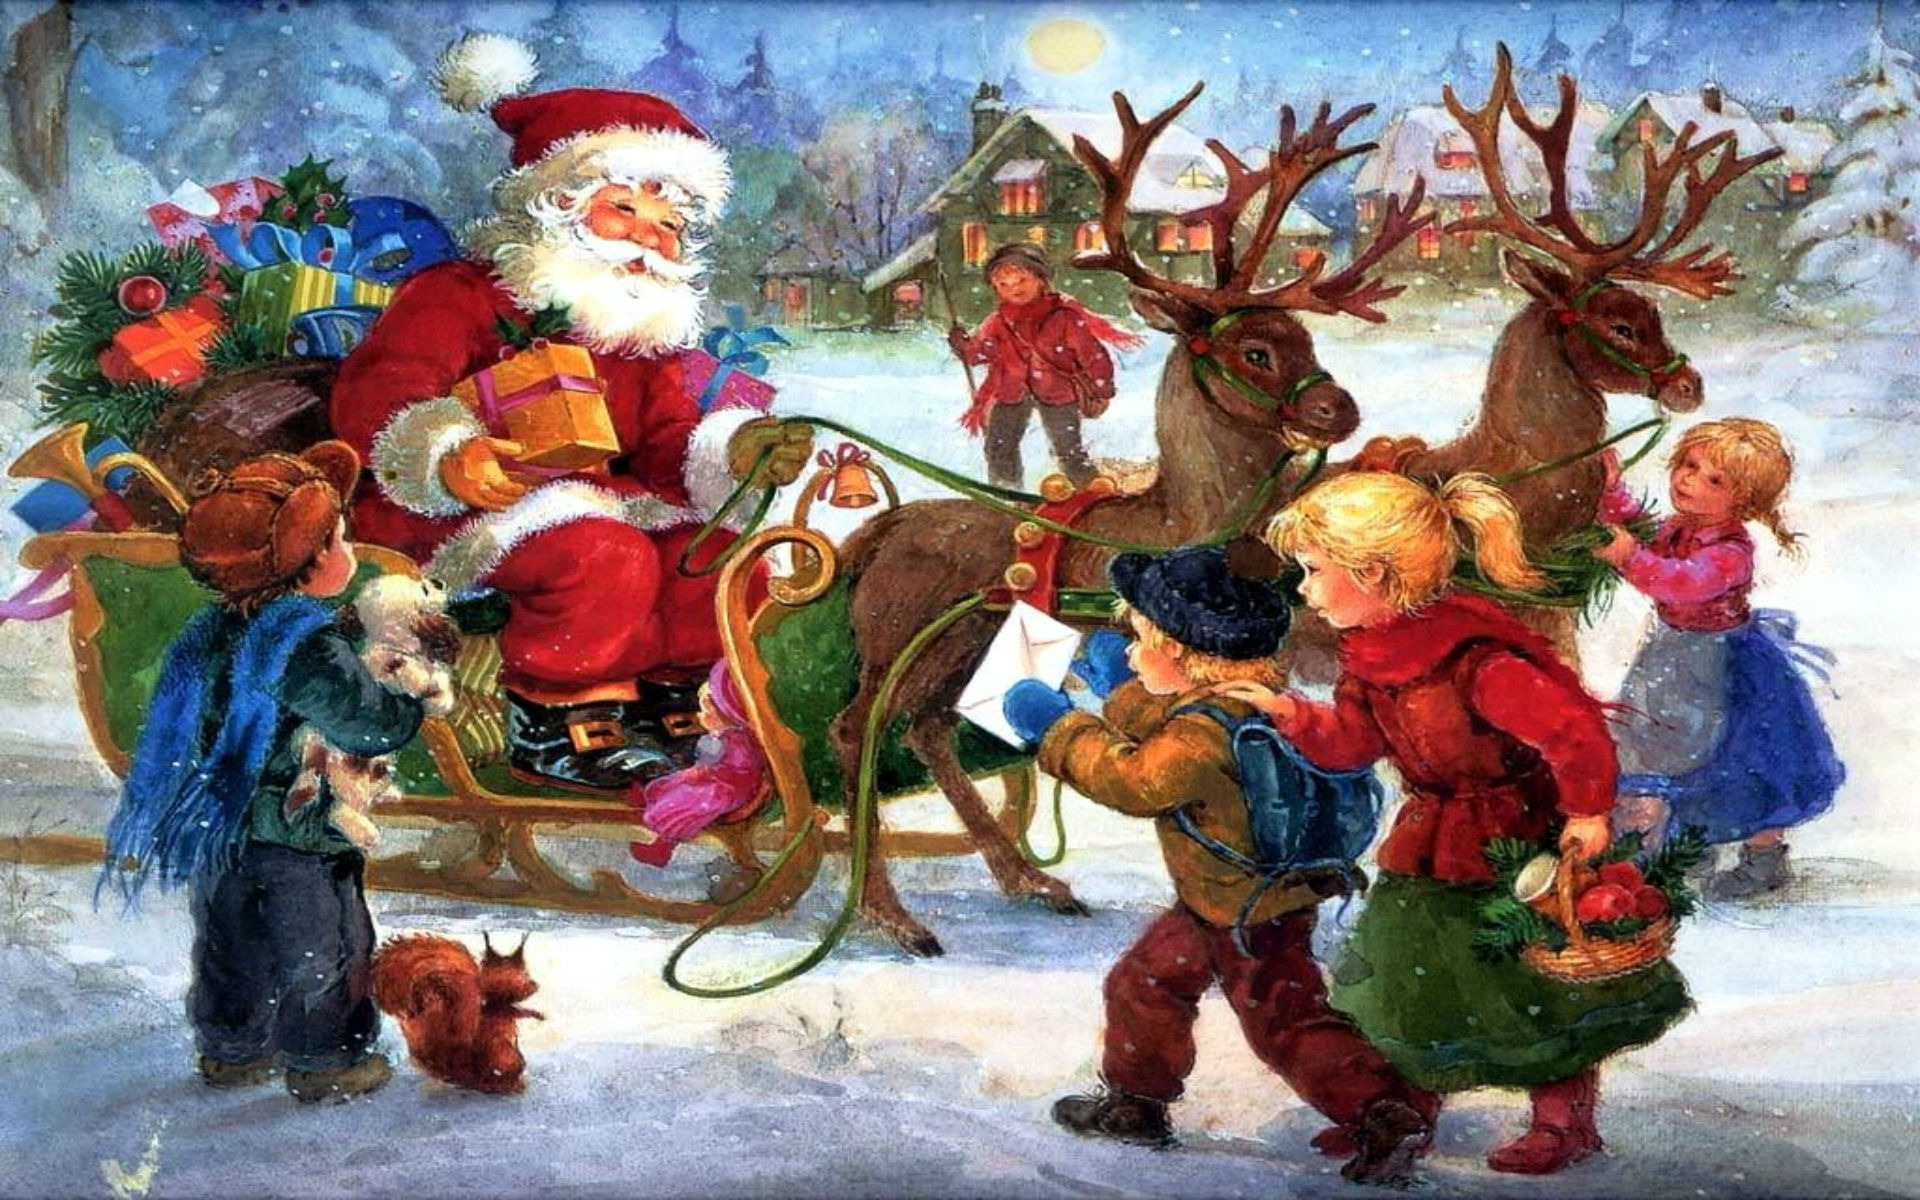 Images of Old Fashioned Christmas Wallpapers 1600x1200 - #CALTO